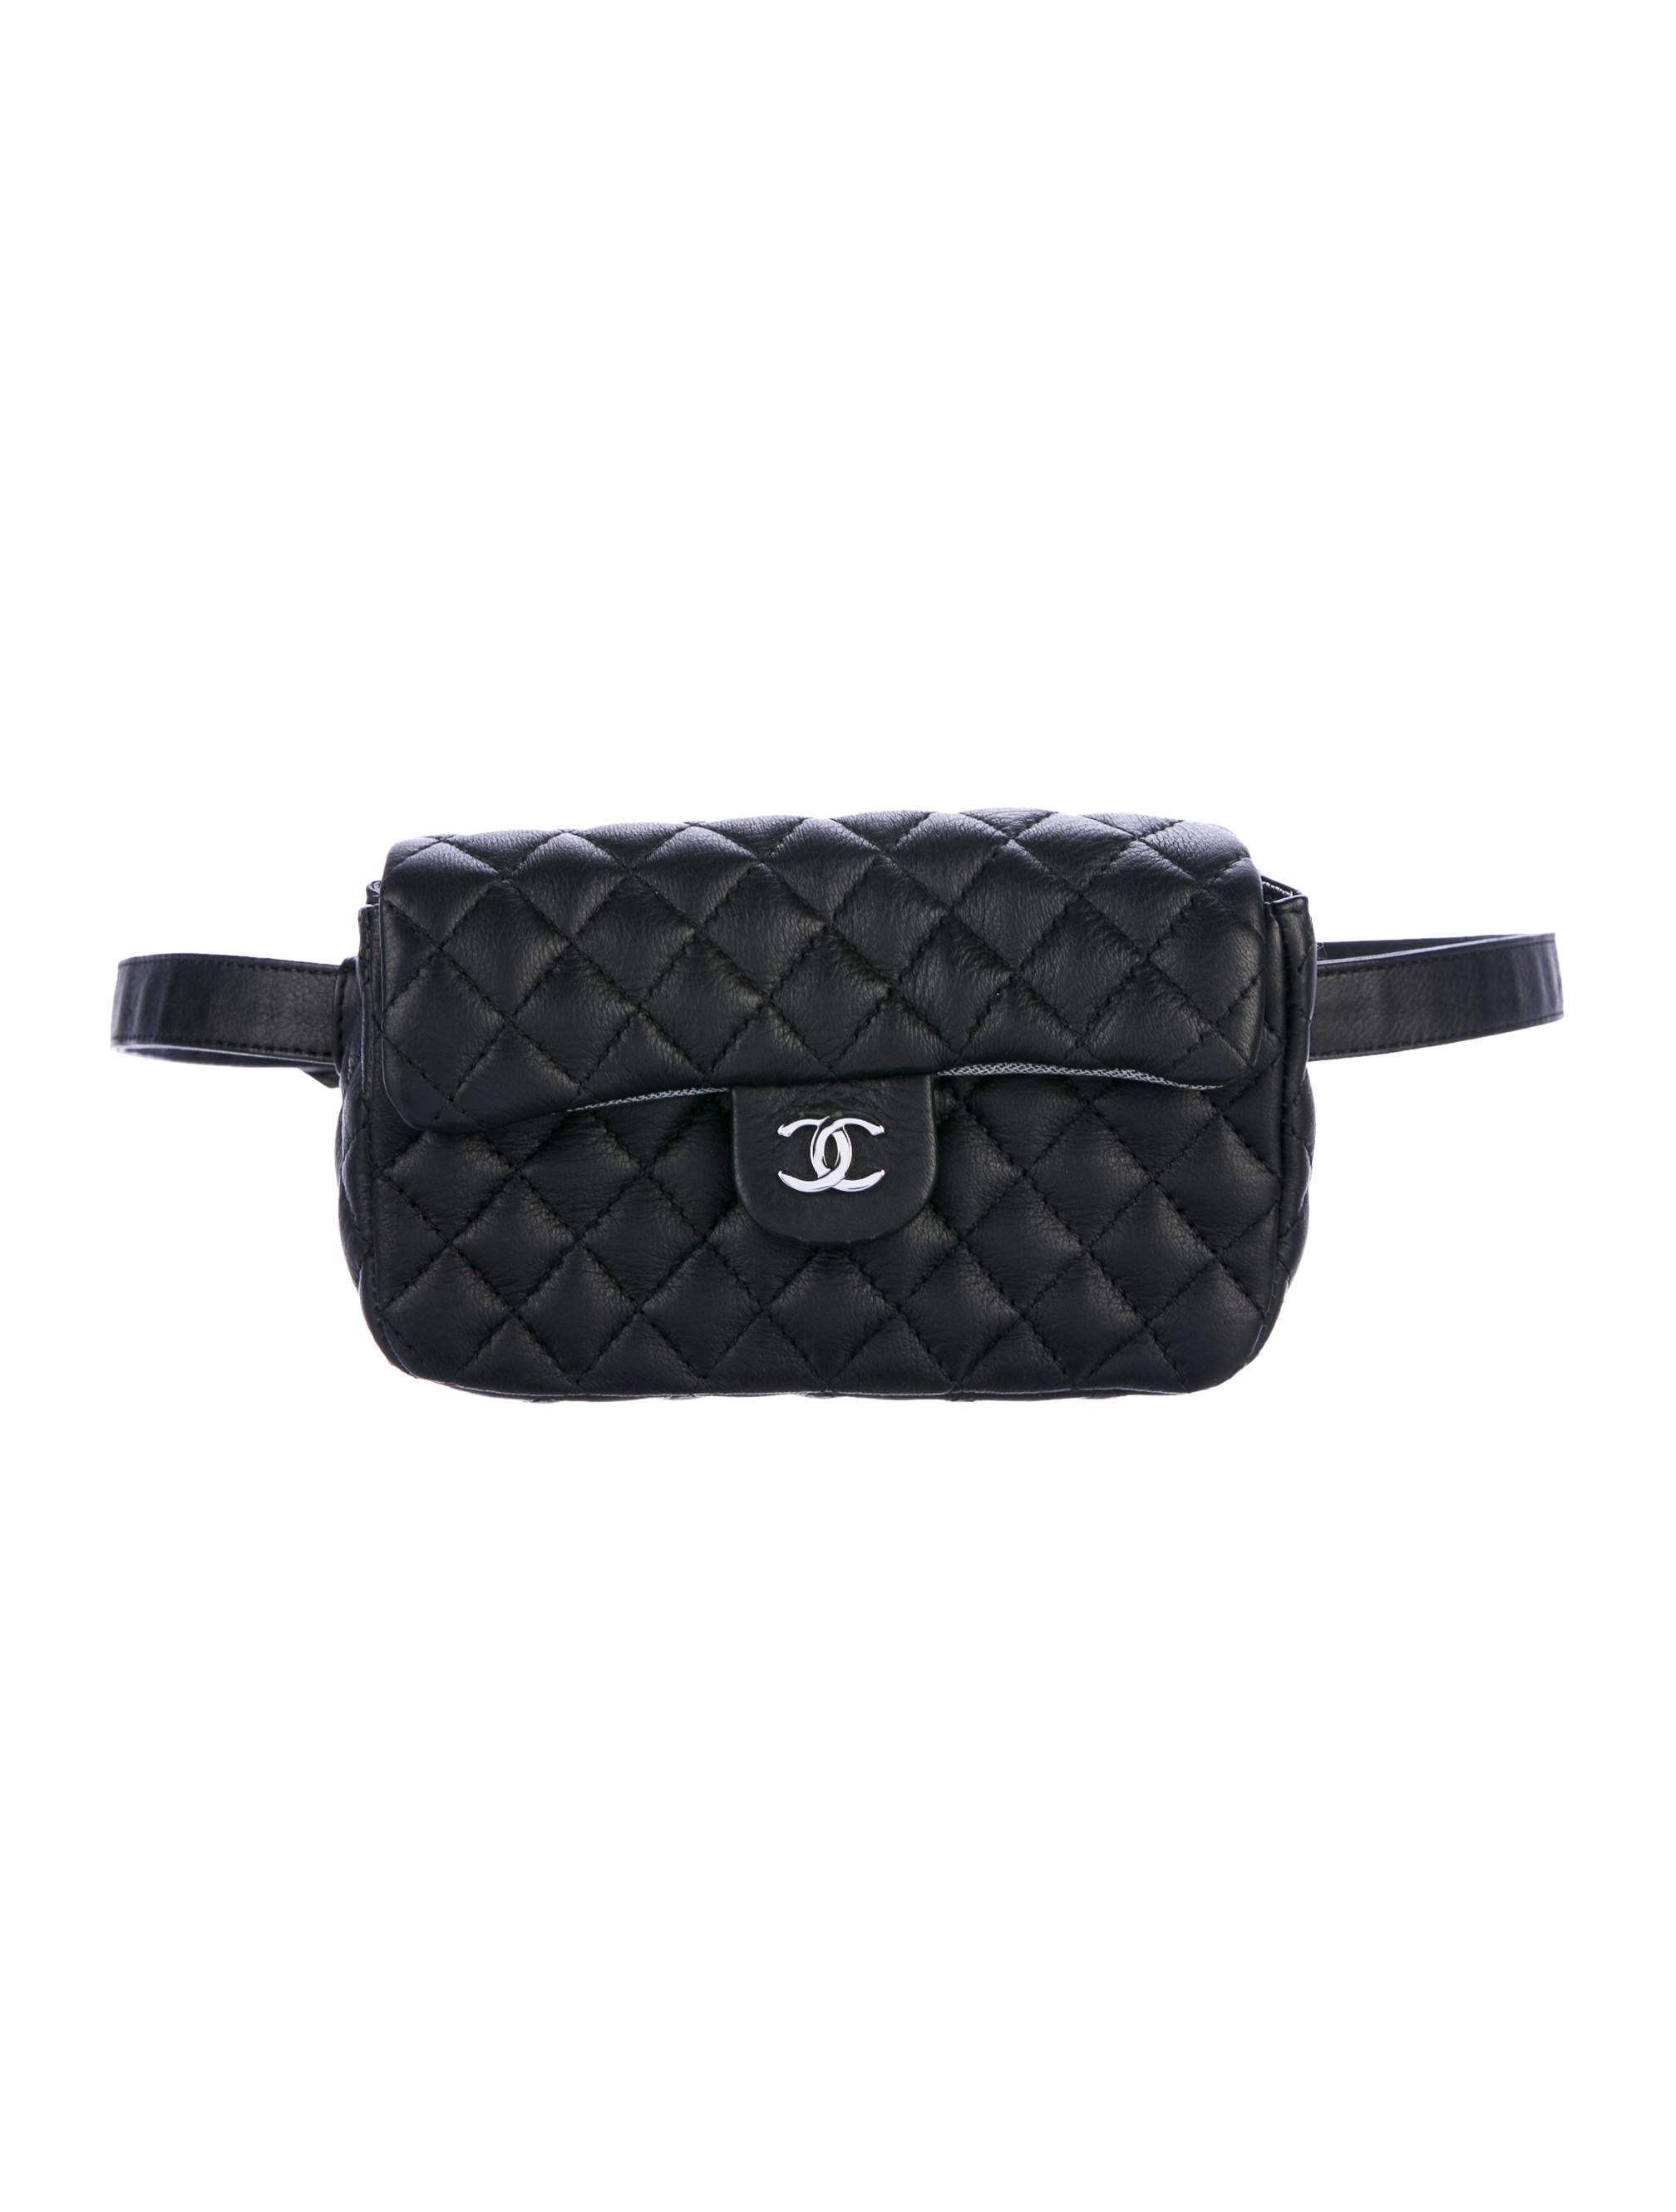 d0f71d61368761 Chanel Uniform Quilted Waist Bag - Handbags - CHA221508   The RealReal